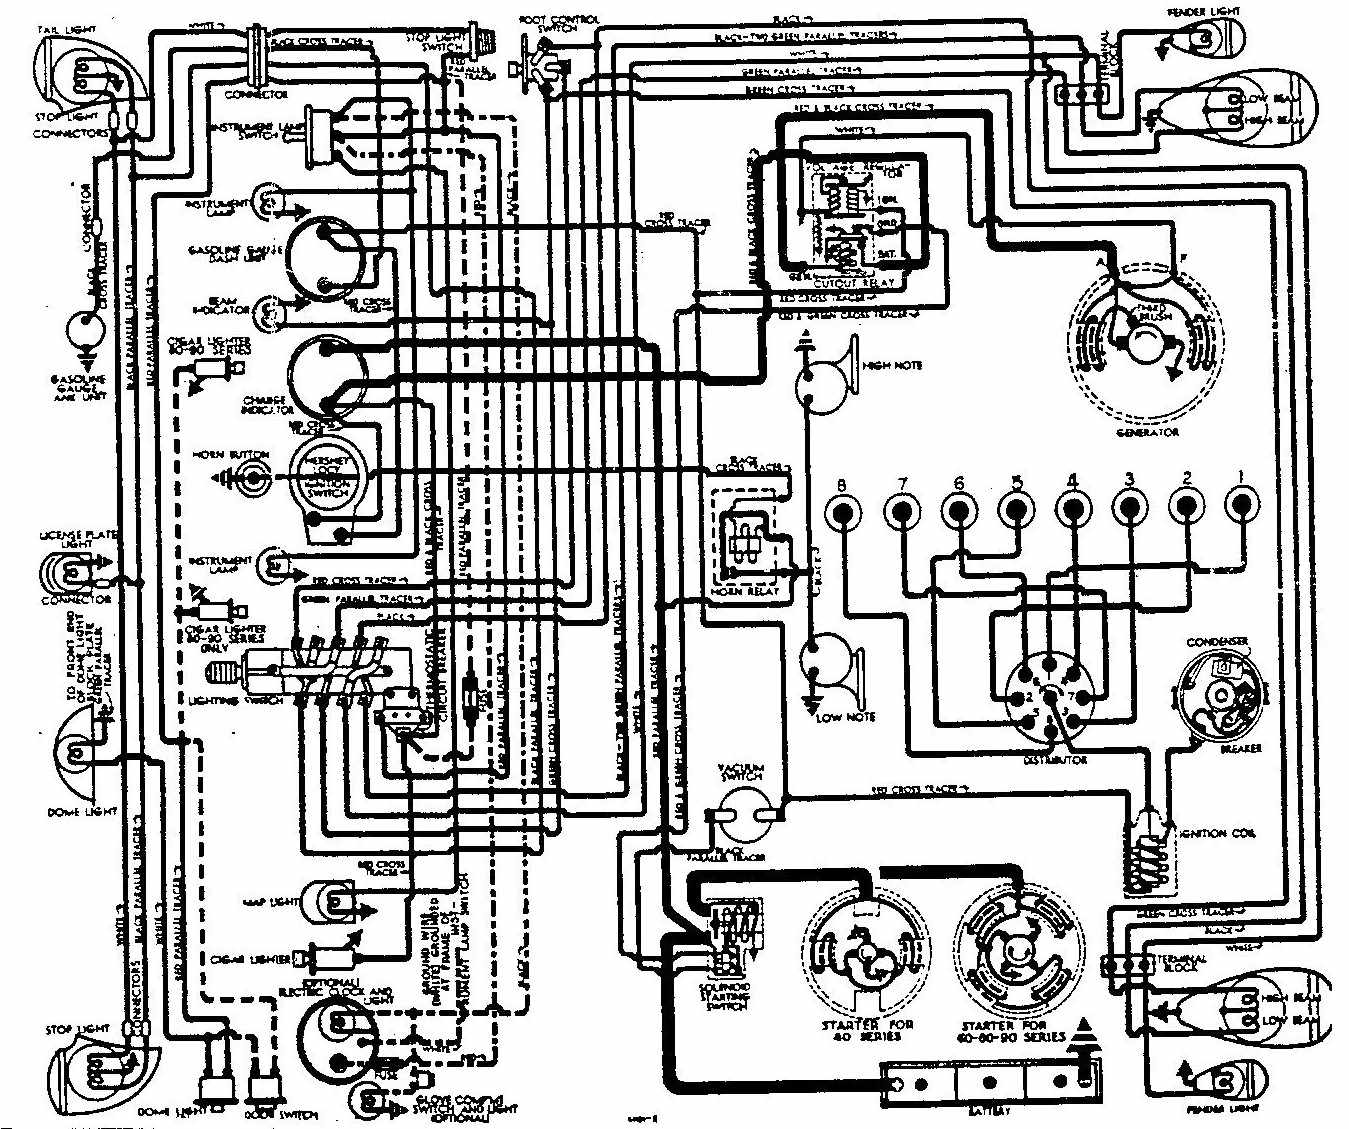 1938 buick wiring diagram online schematic diagram u2022 rh holyoak co 1996 buick roadmaster specifications 1996